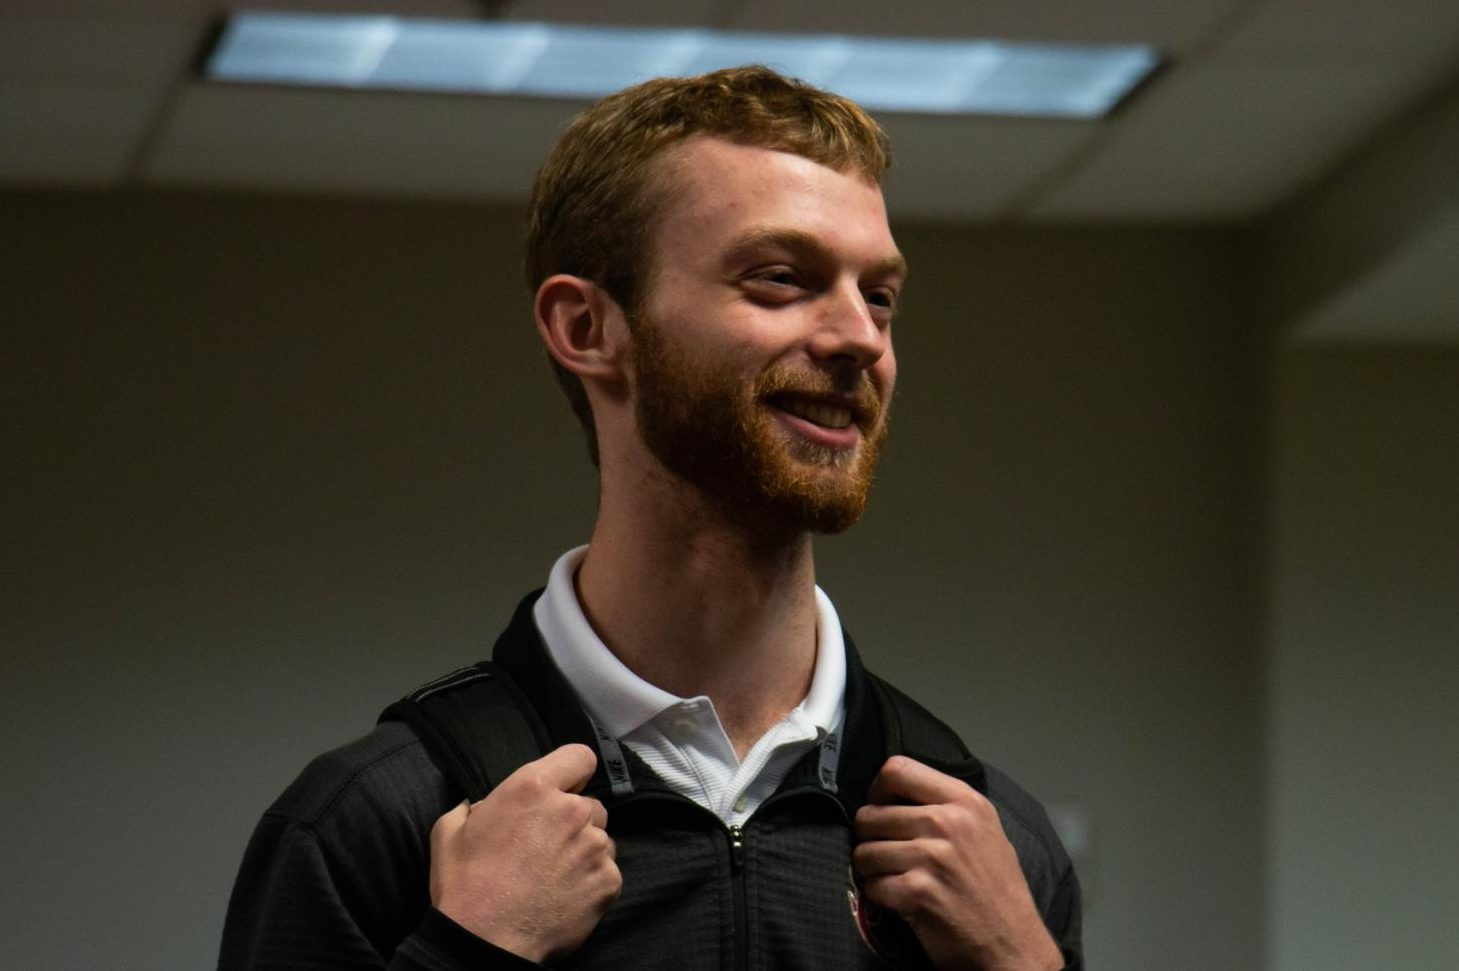 Junior Alan Henderson spent the month of November growing his beard for the competition. His hard work paid off because he won the competition.